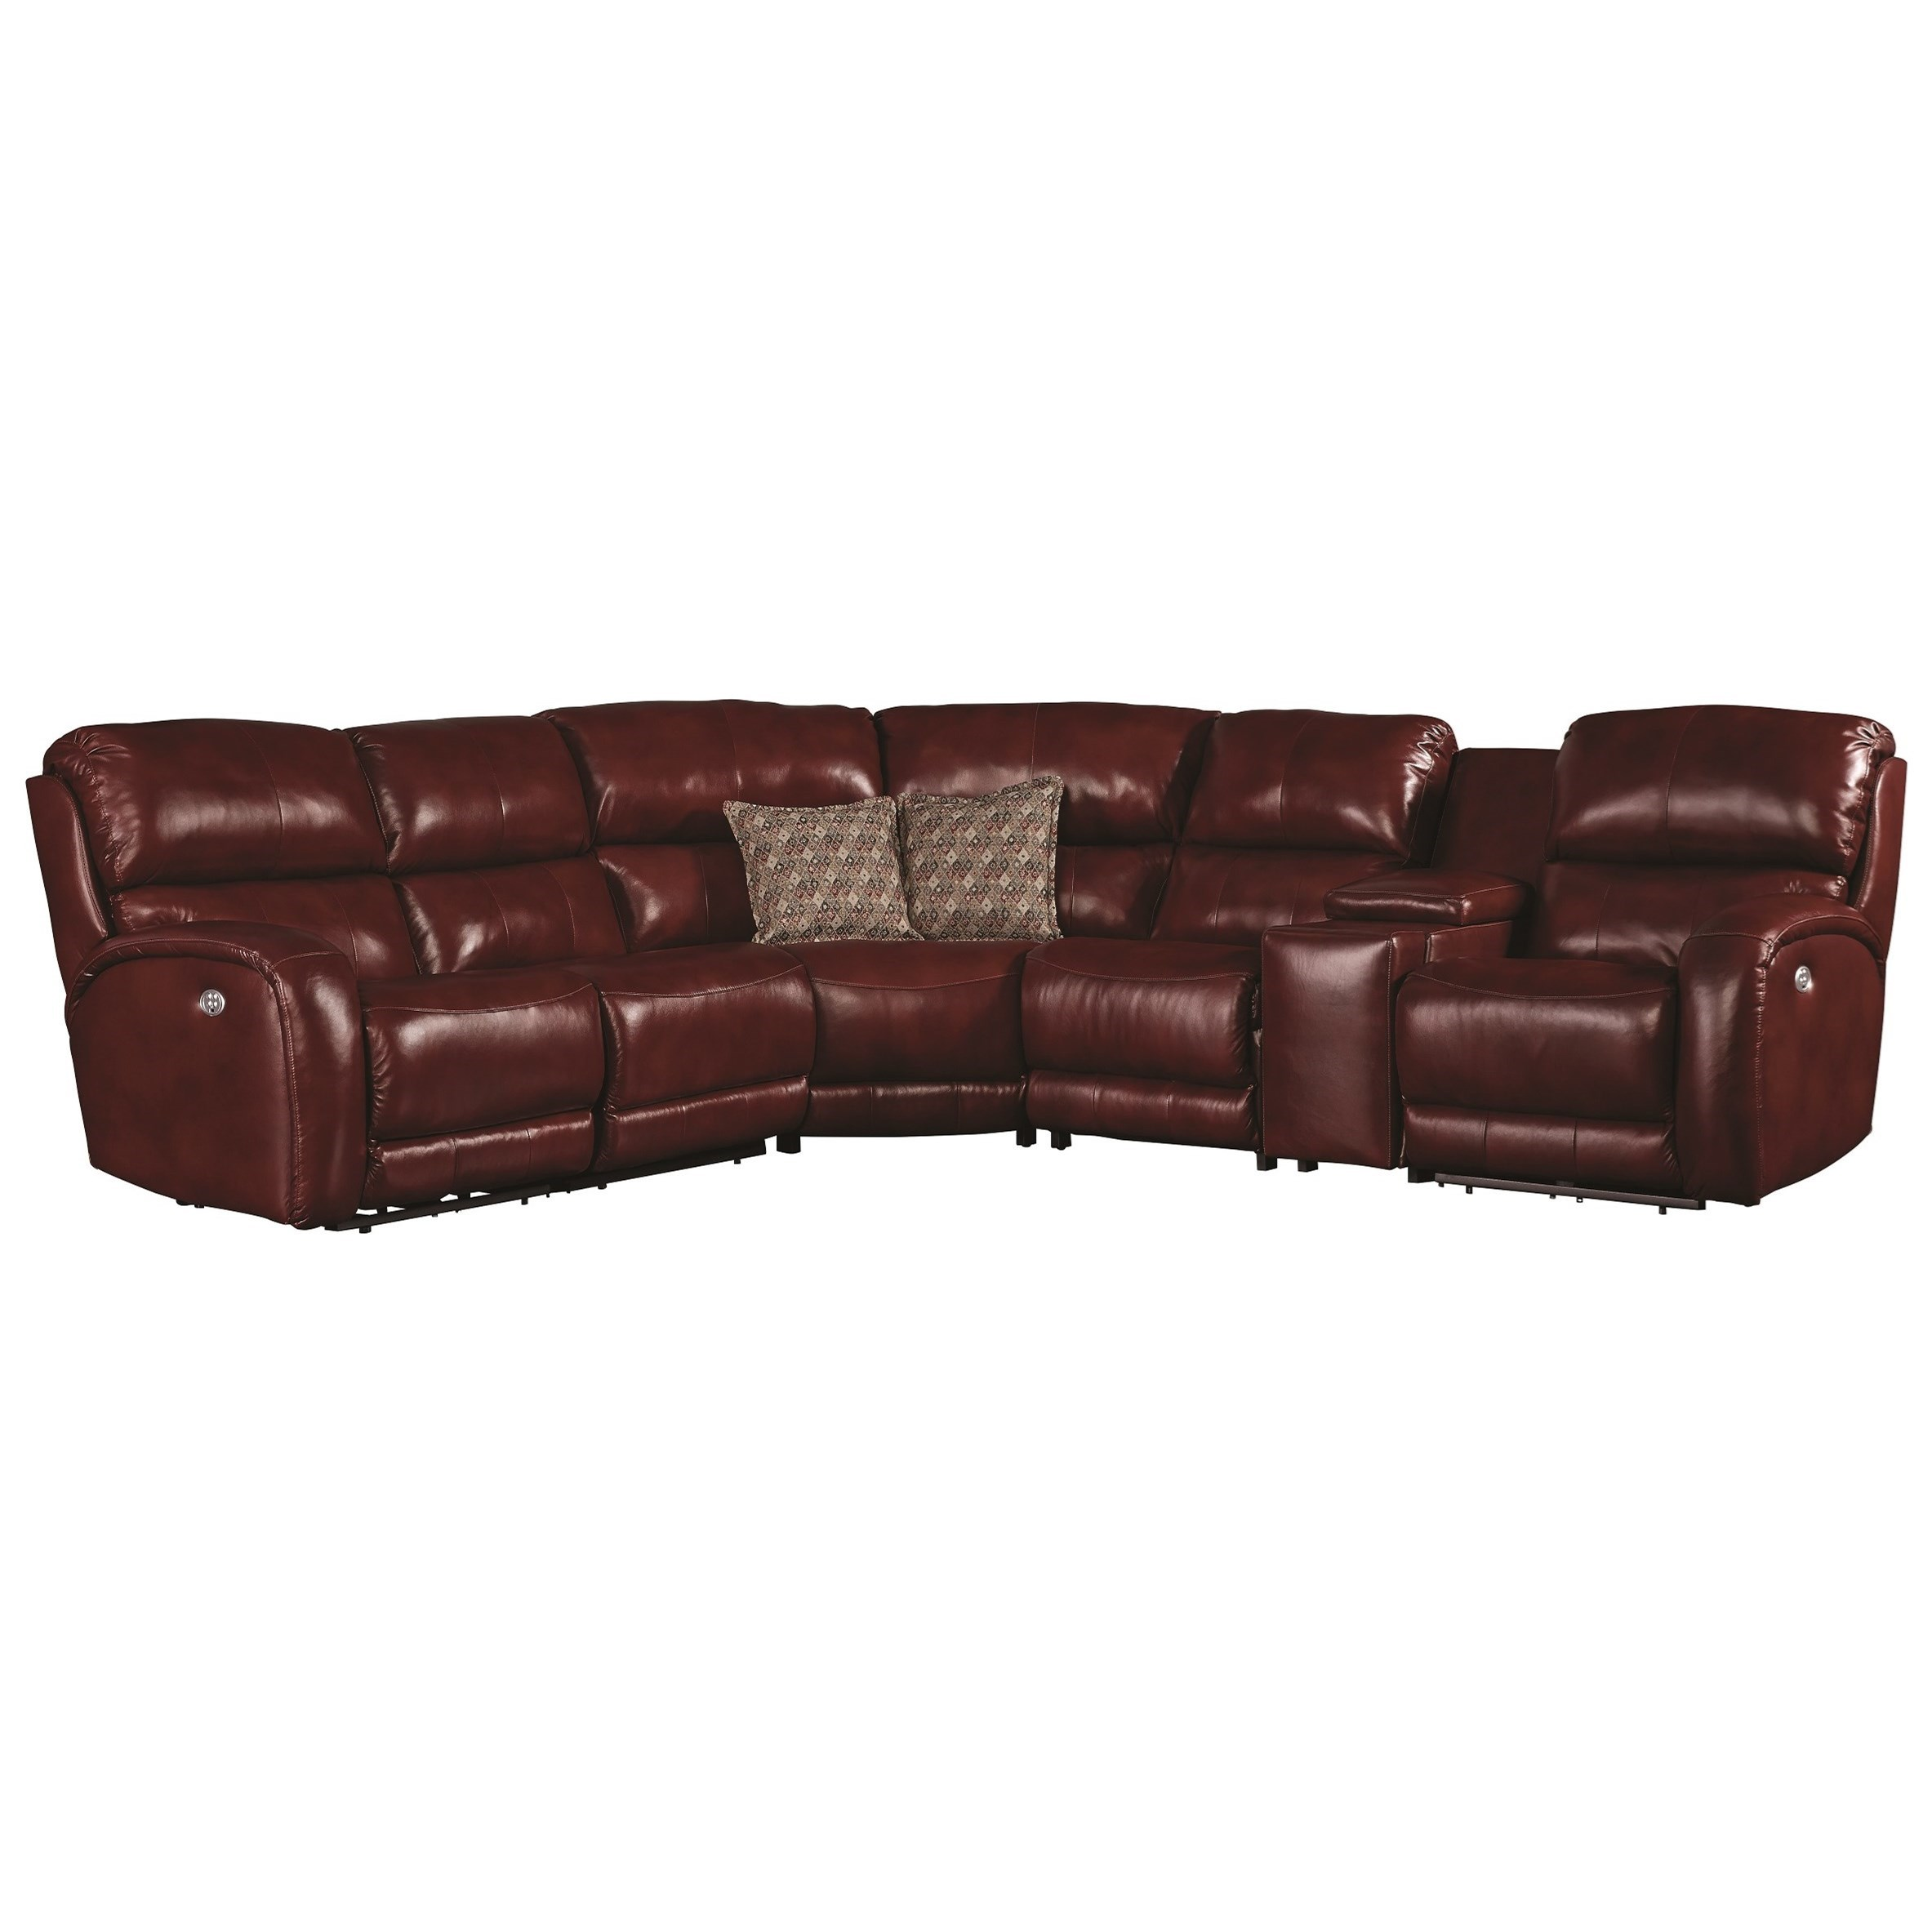 Fandango Power Headrest Reclining Sofa by Southern Motion at Rooms and Rest